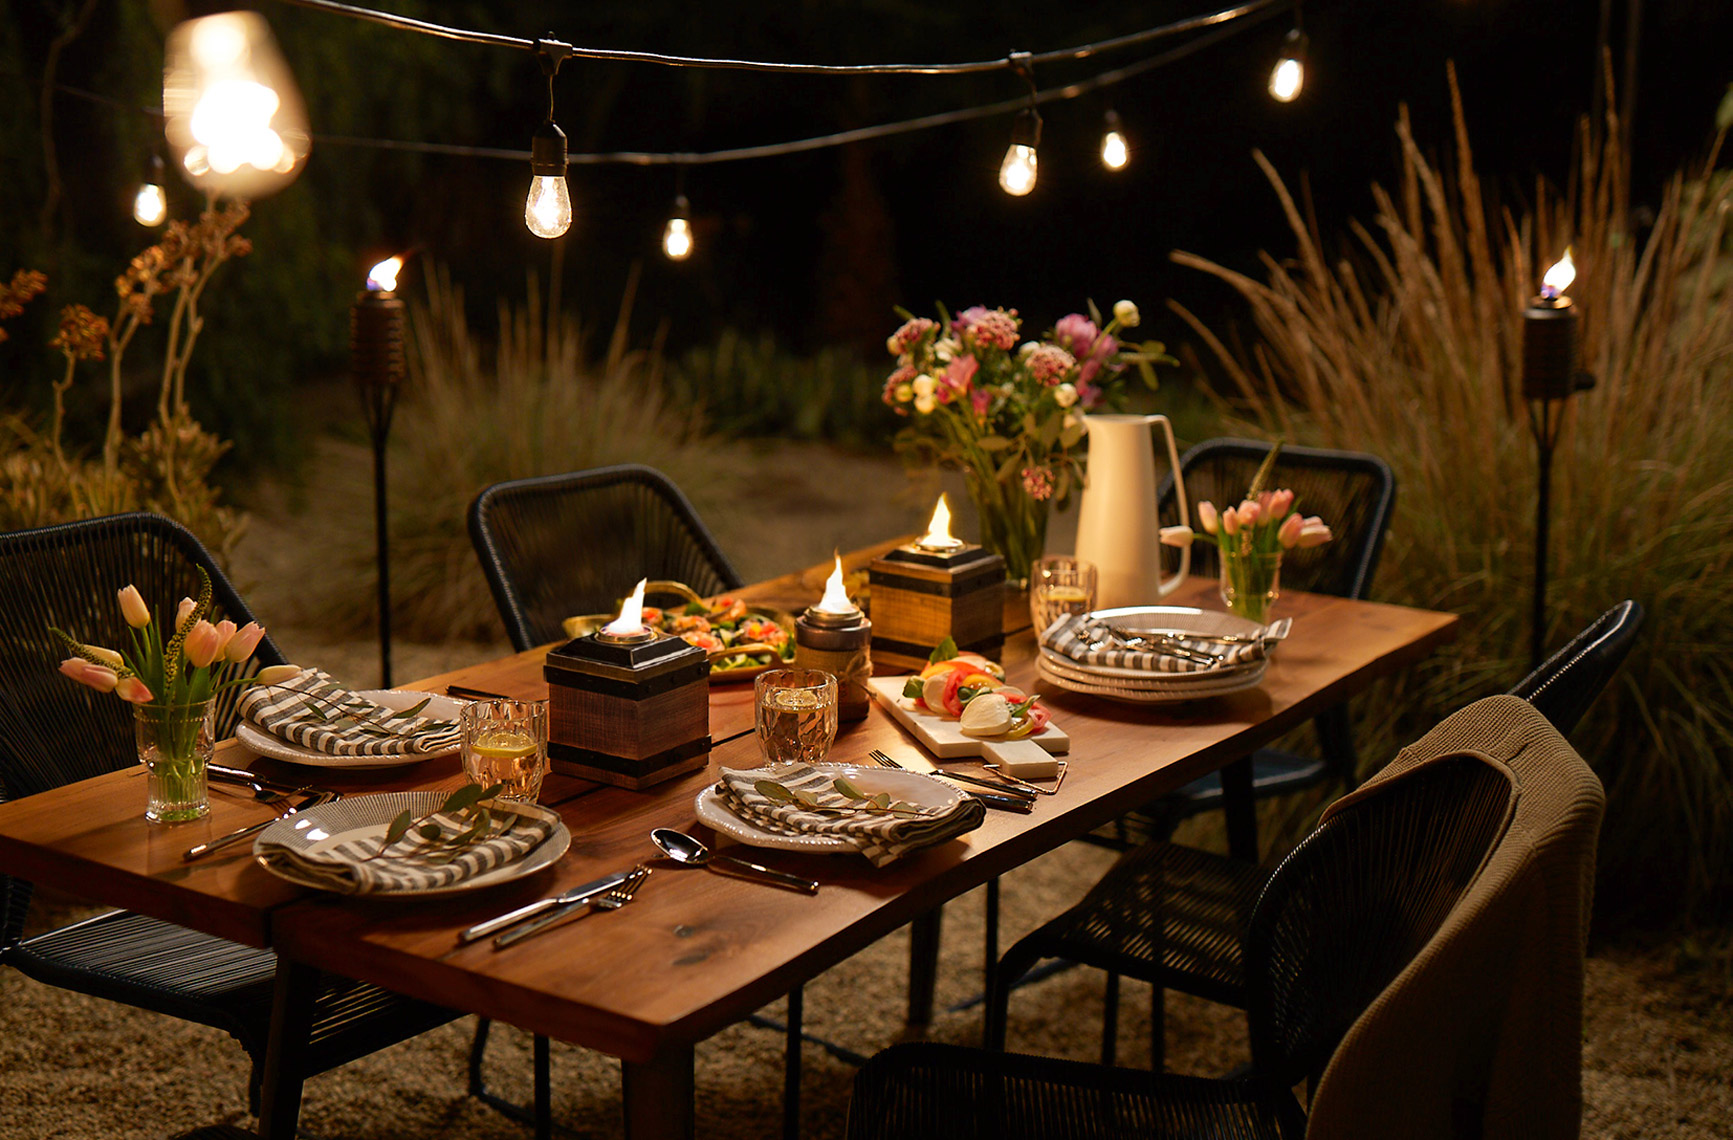 RB_PARTYPLAN_RUSTIC_GENCELEBRATE_MED_0325